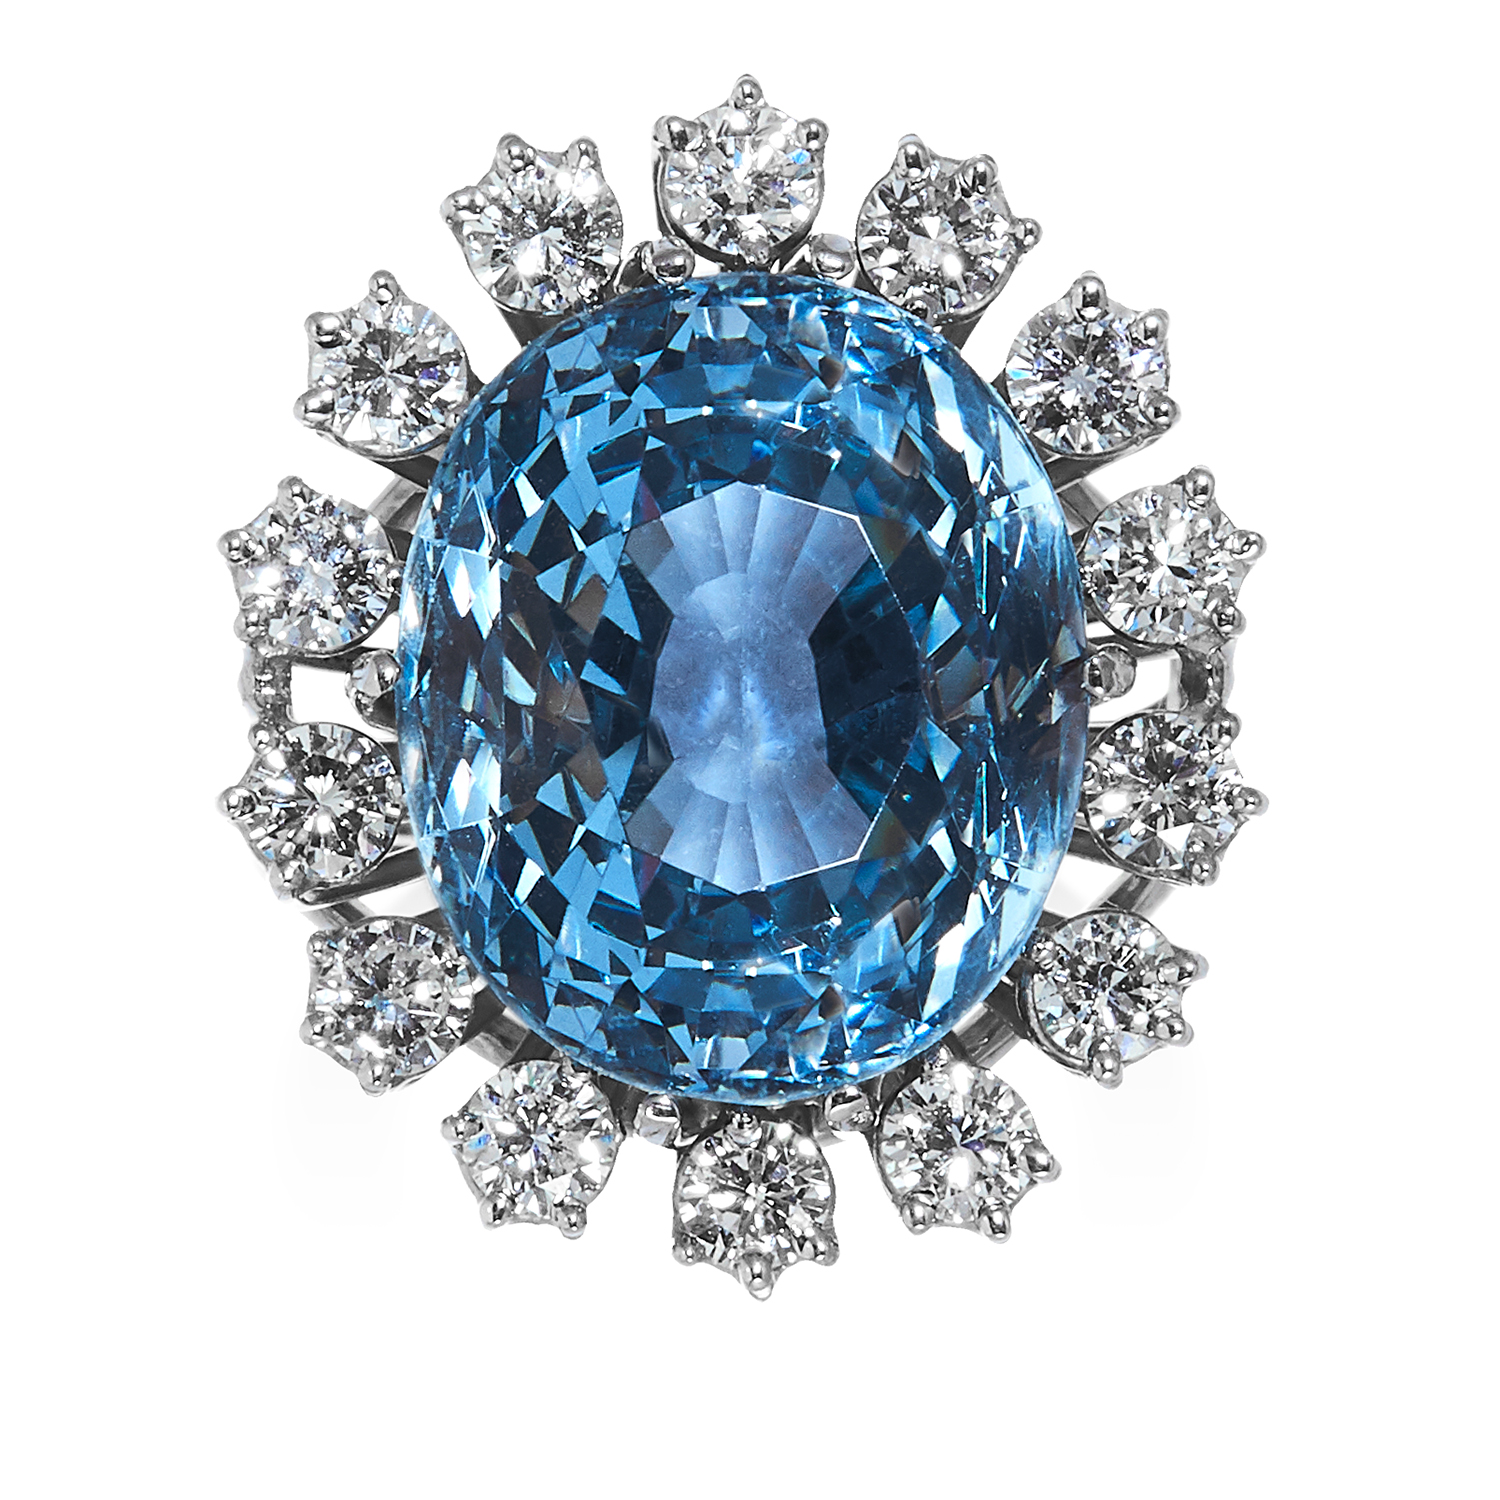 Los 1 - AN AQUAMARINE AND DIAMOND RING in 18ct white gold, the oval cut aquamarine of 16.25 carats encircled